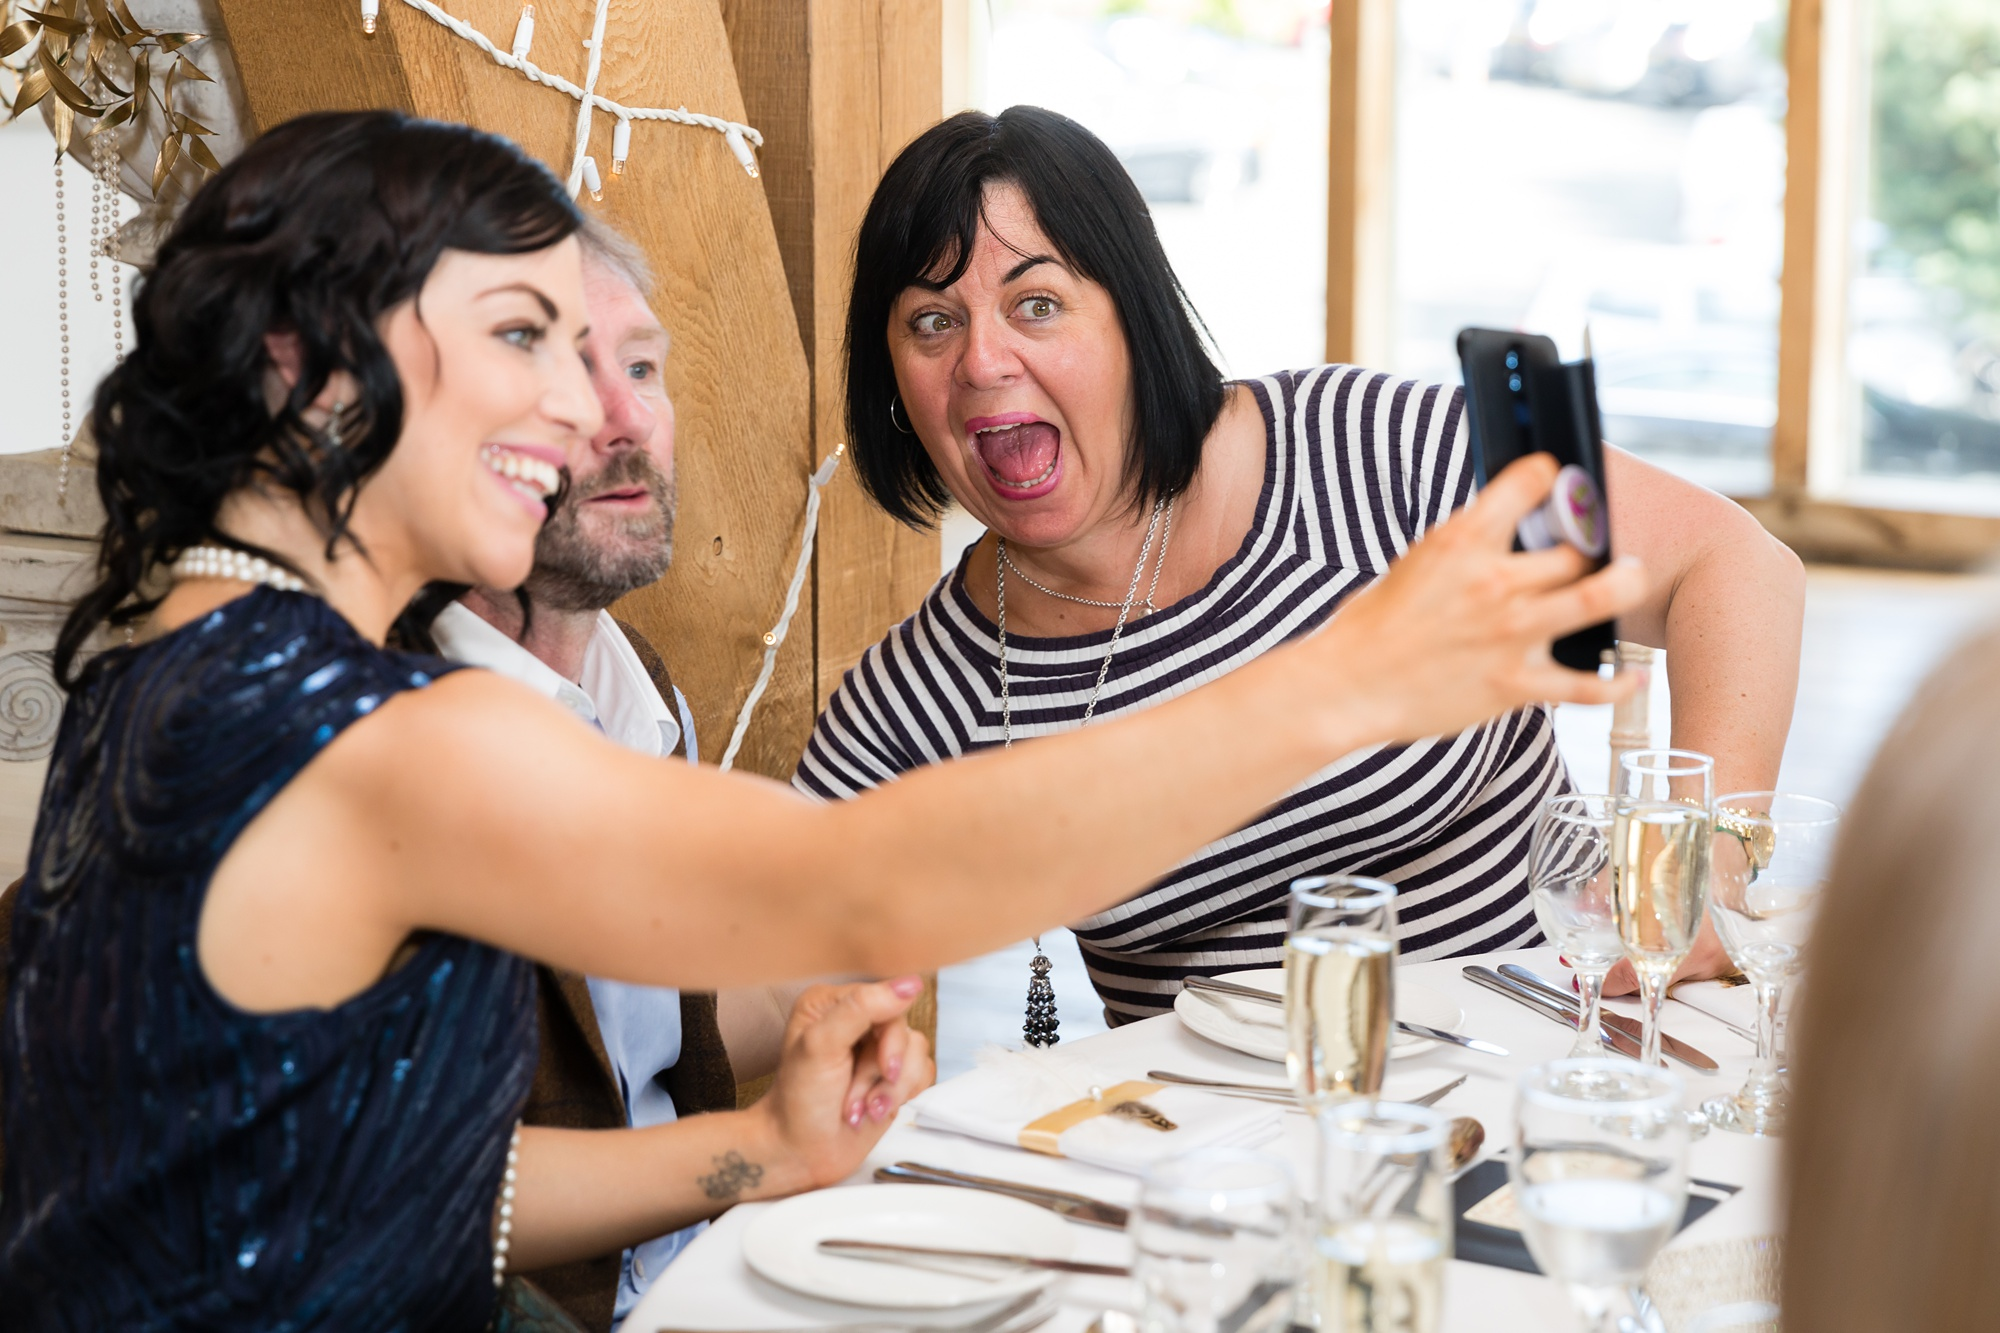 Guests take a selfie at York wedding.